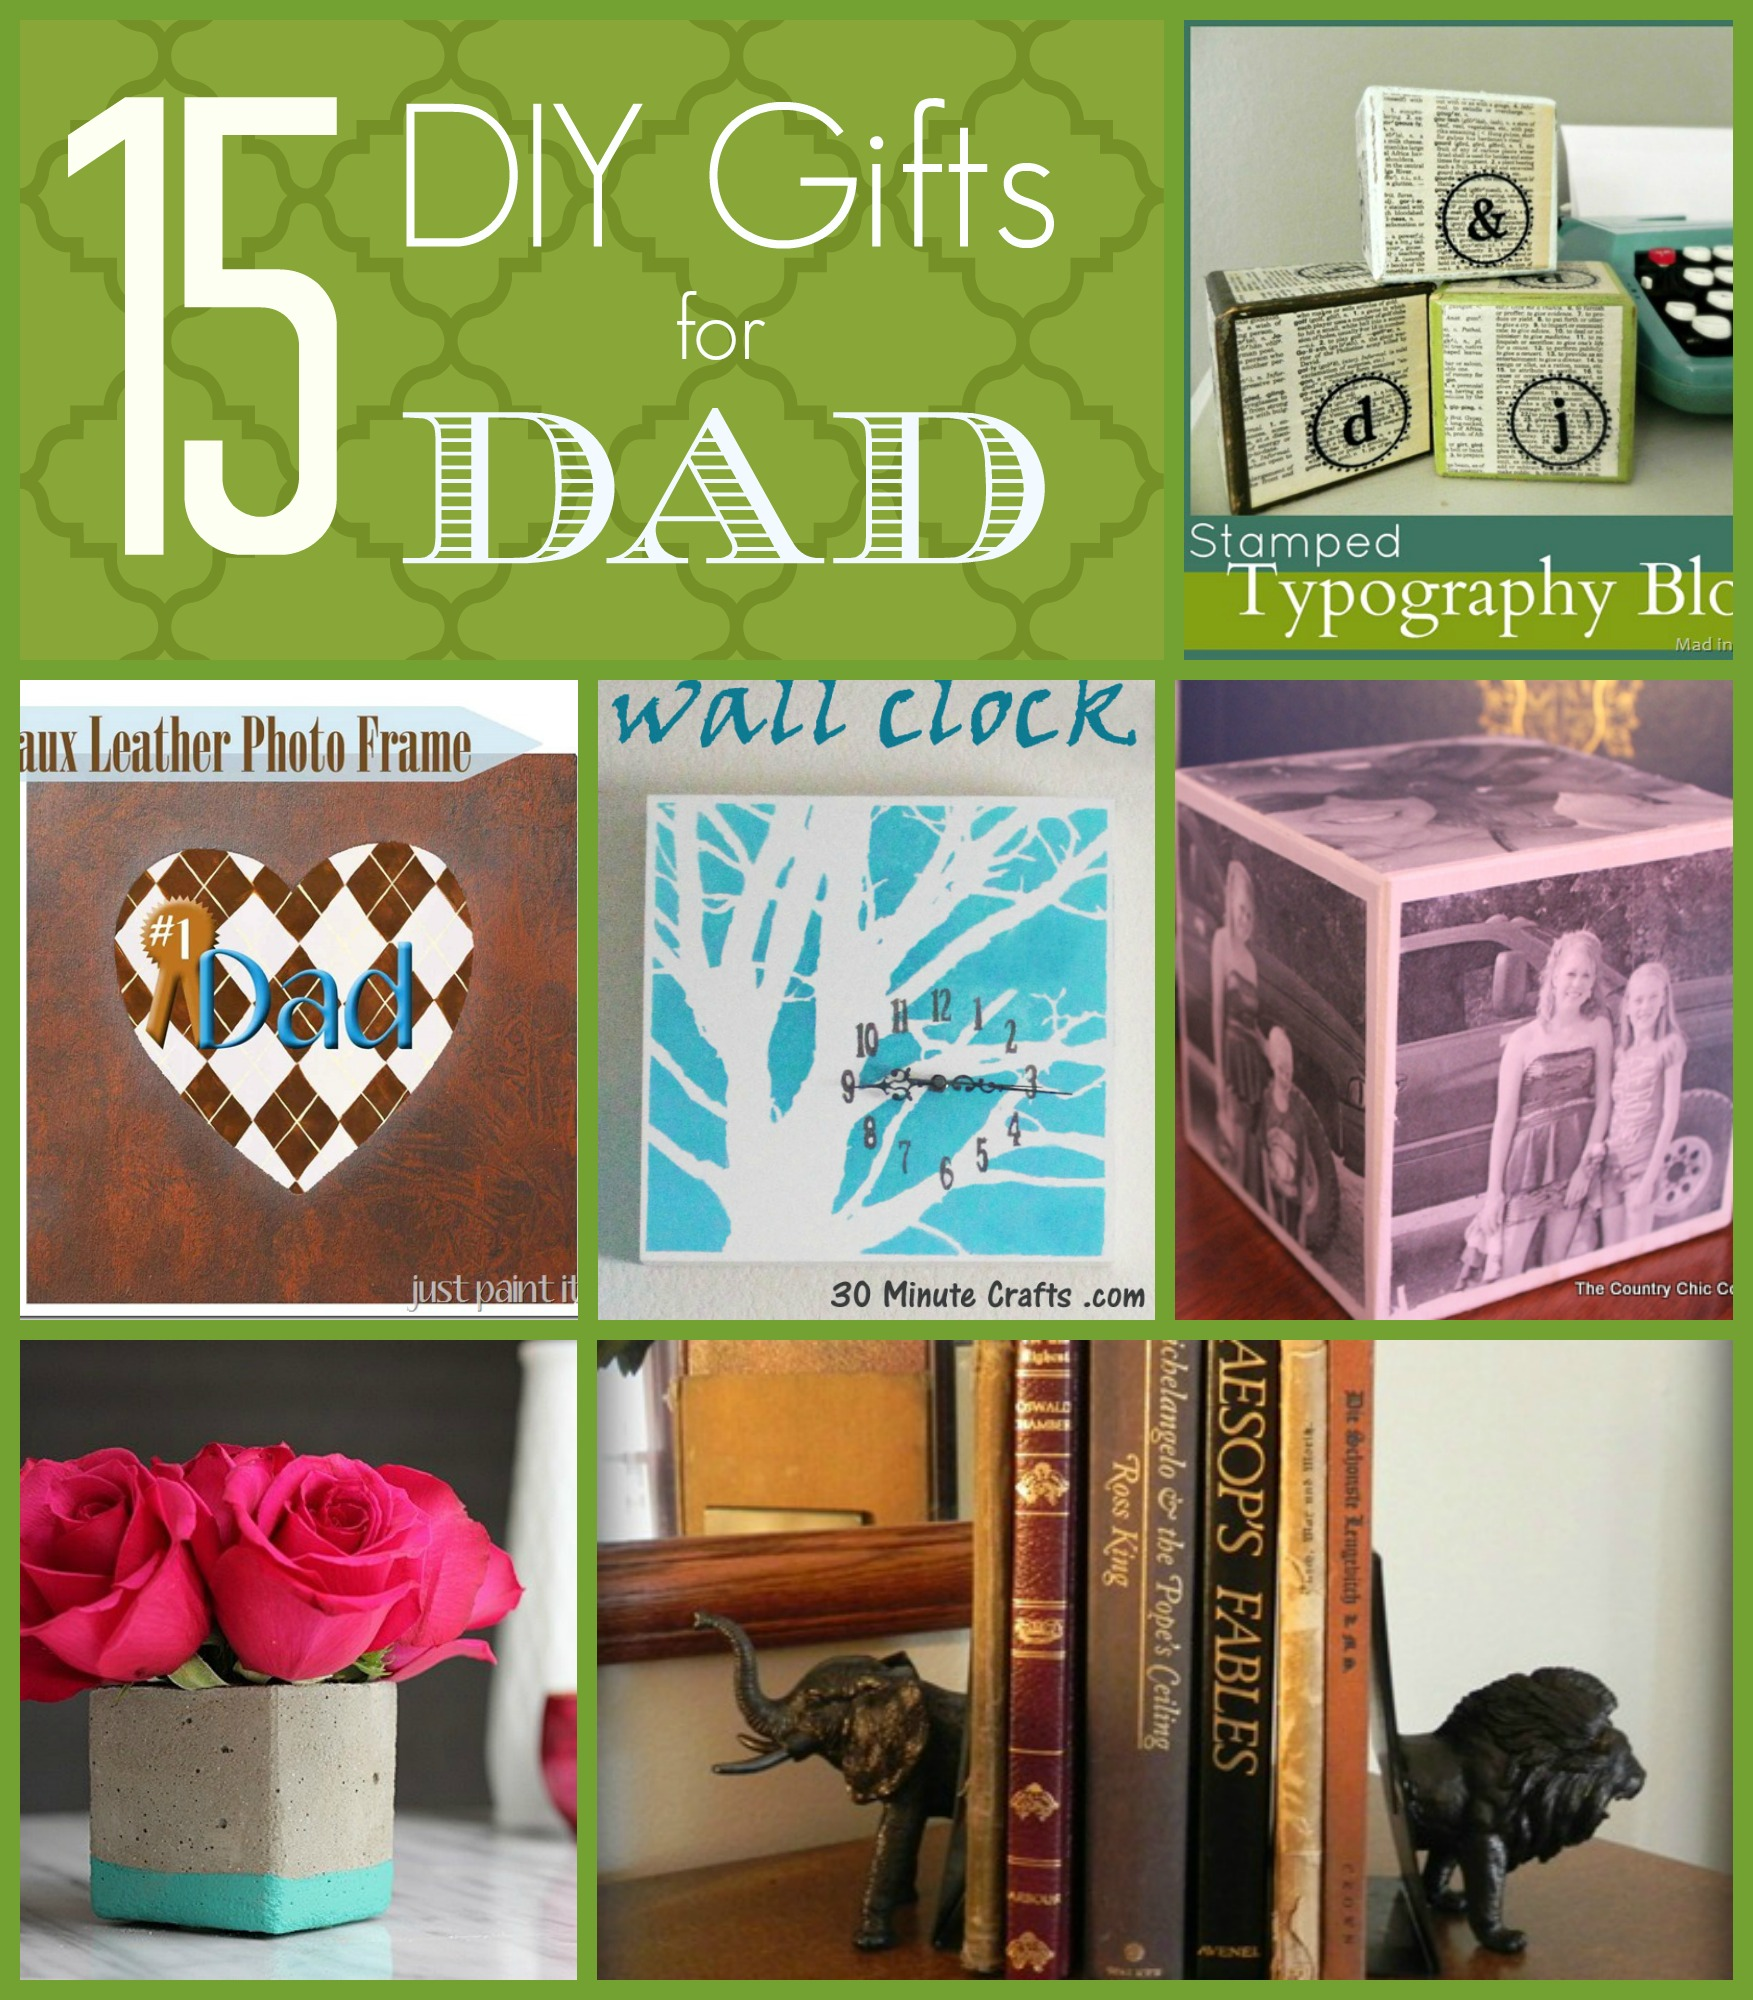 Homemade christmas gifts ideas for kids - Presents For Dad Diy For Dad Diy